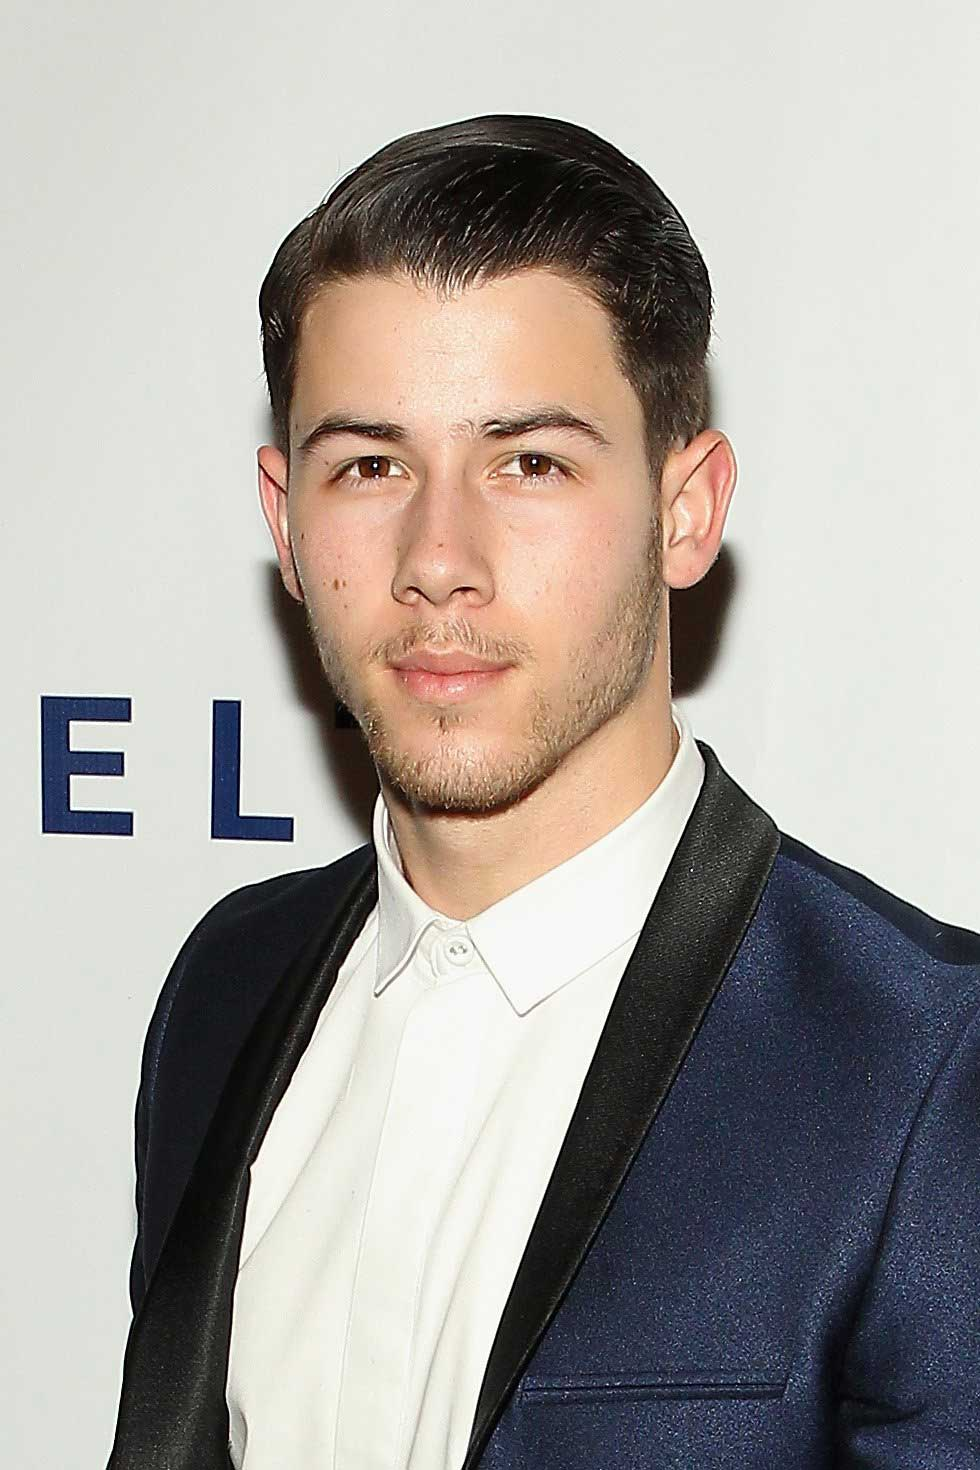 Nick Jonas attends an event at John F. Kennedy Center for the Performing Arts on Jan. 7, 2015 in Washington, DC.